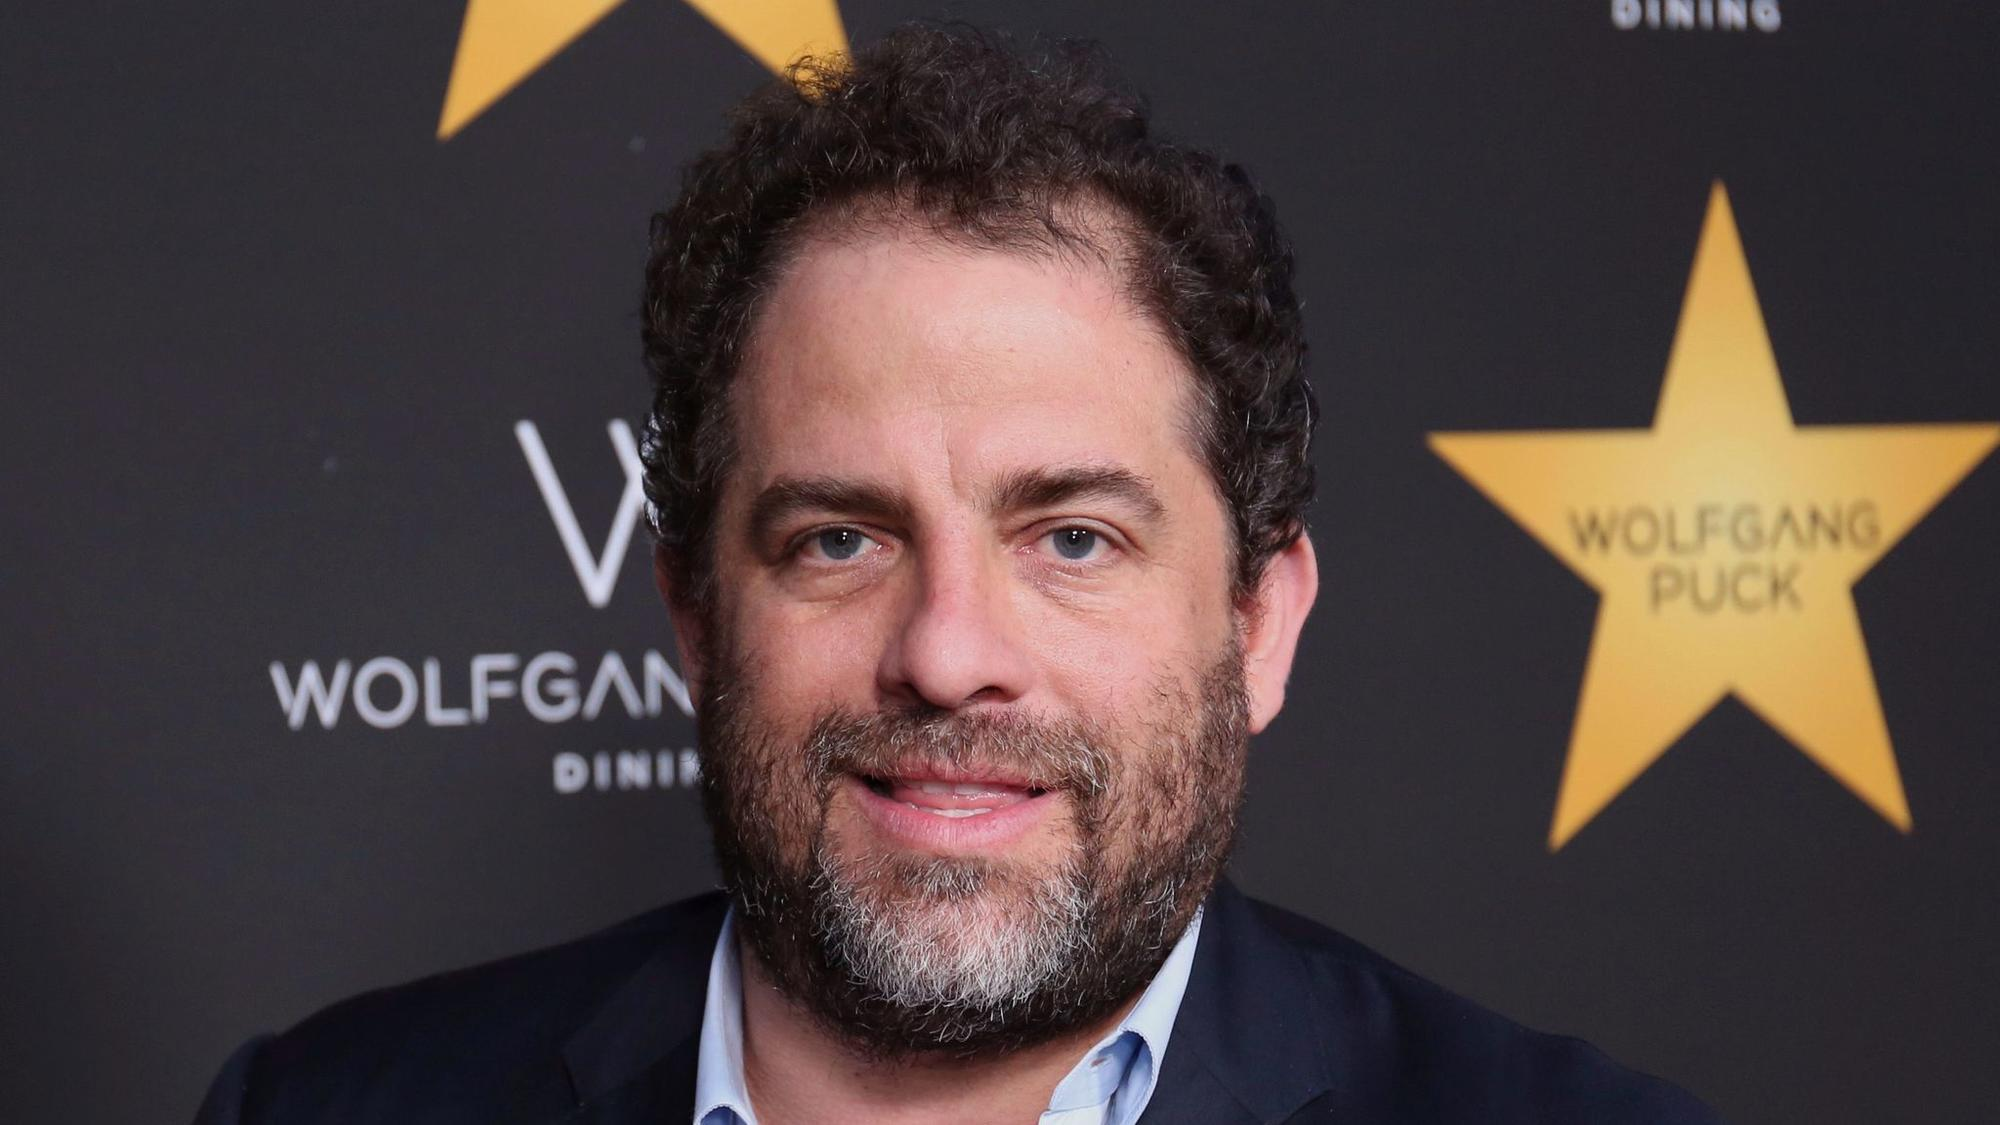 Director Brett Ratner is accused of sexual misconduct by more than 10 women